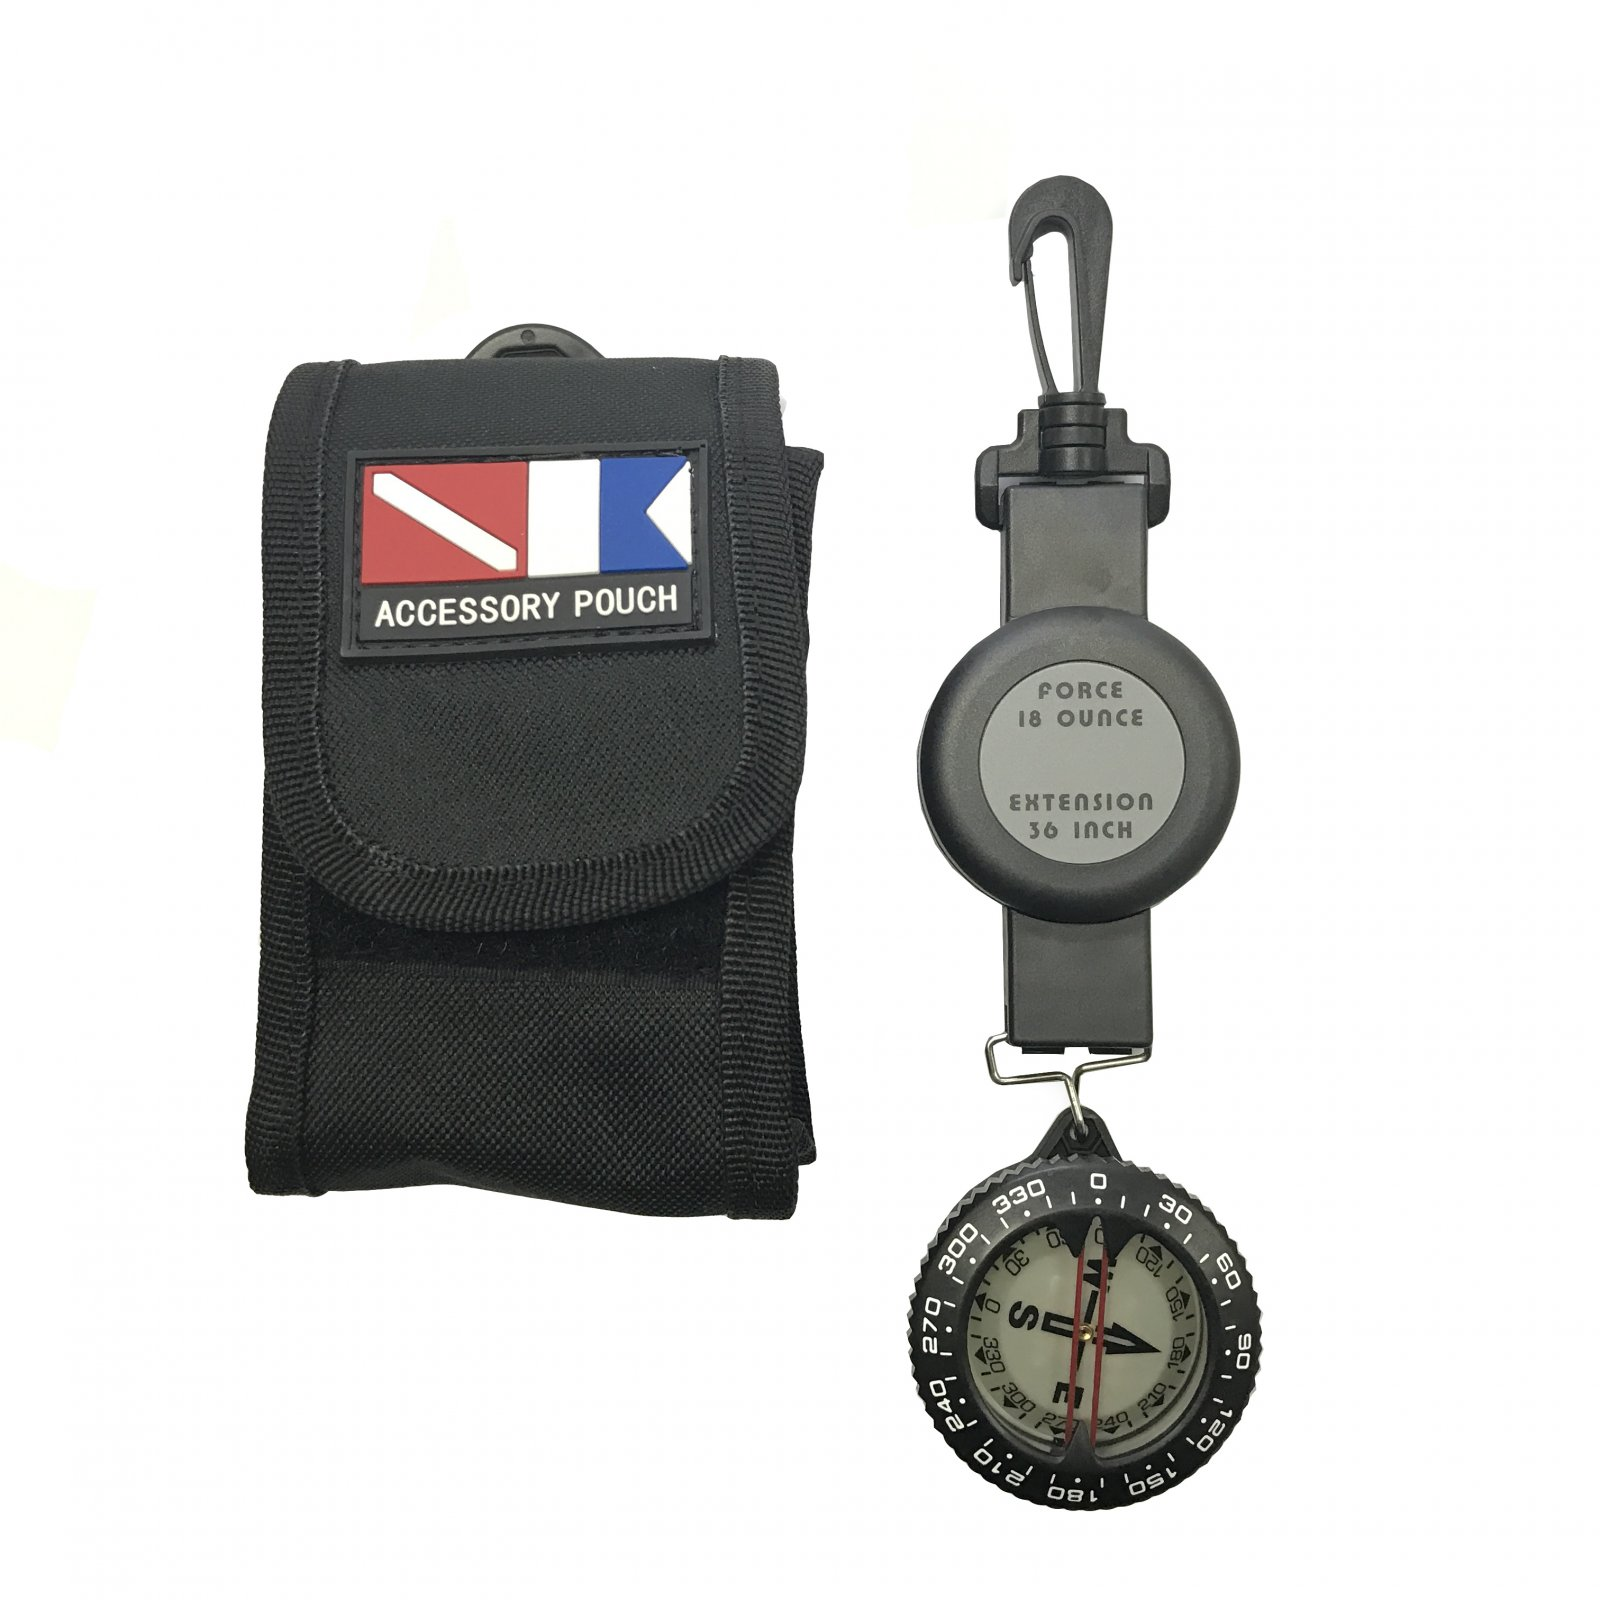 Compass with Retractor and Pouch